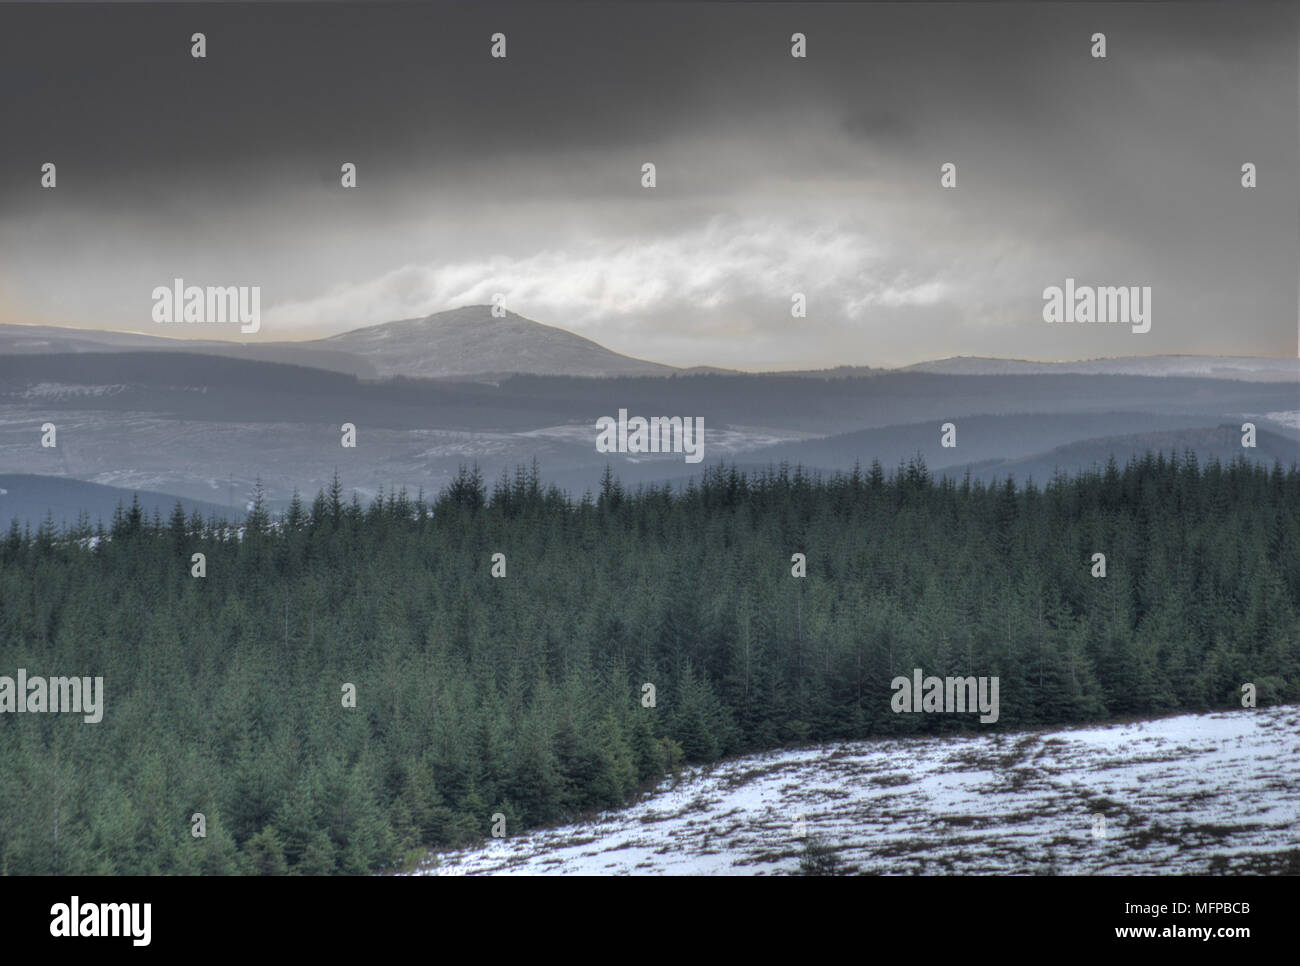 View over forest of conifers in west direction towards snowy peak of Ben Aigan. - Stock Image